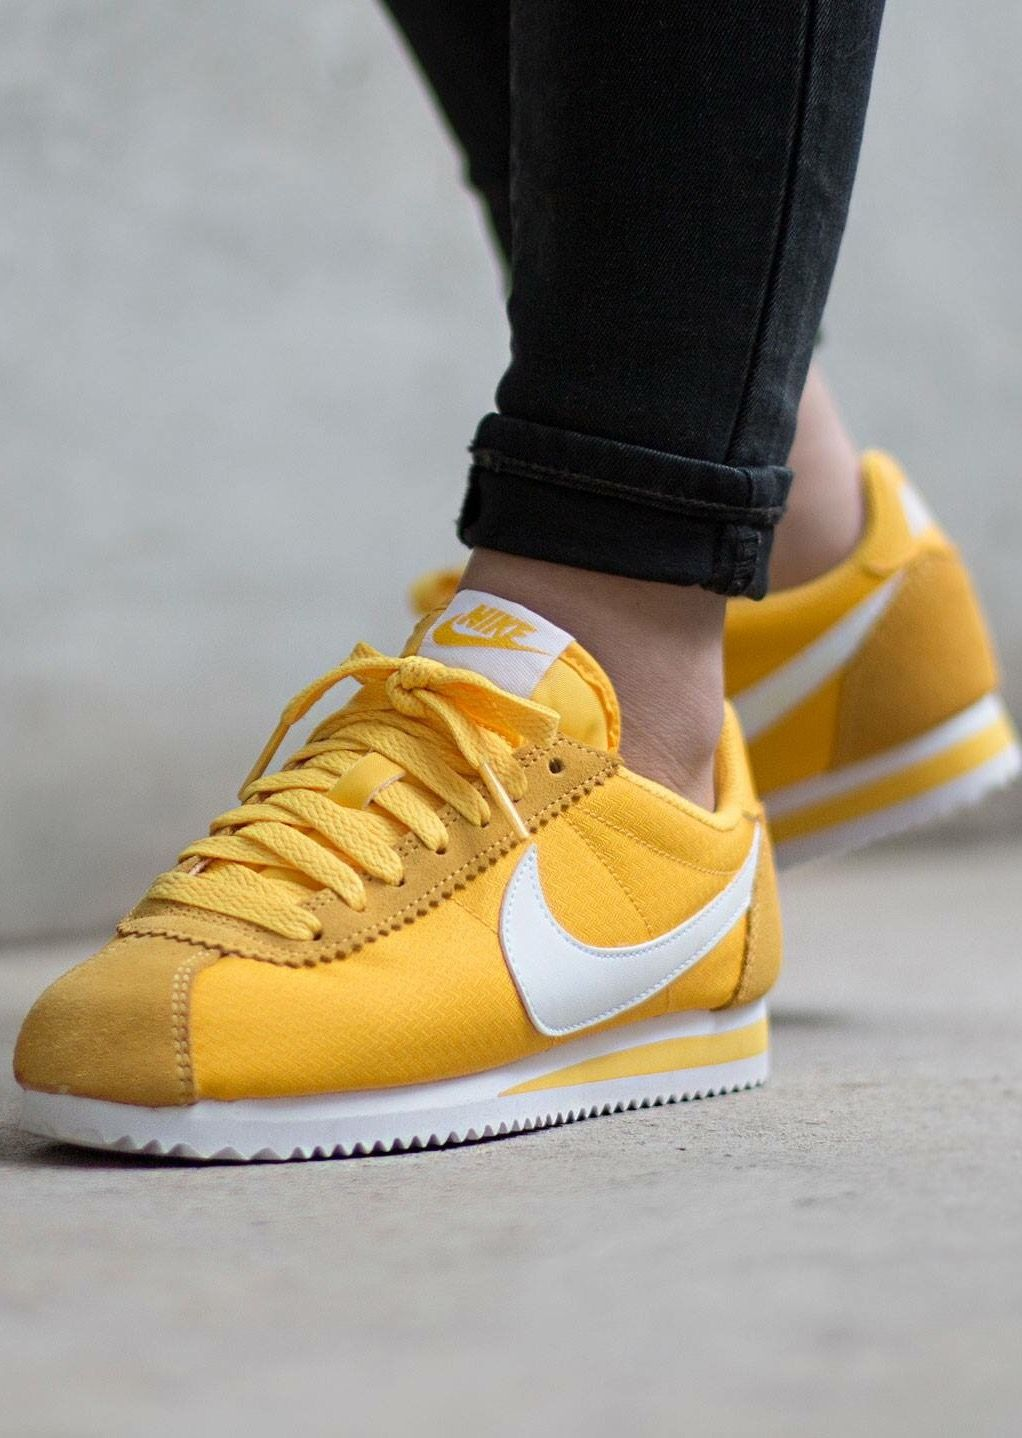 separation shoes b8e8c 44bf2 Buy Nike Cortez Womens Yellow Black Friday Deals Copuon Code QHWRdNR from  Reliable Nike Cortez Womens Yellow Black Friday Deals Copuon Code QHWRdNR  ...